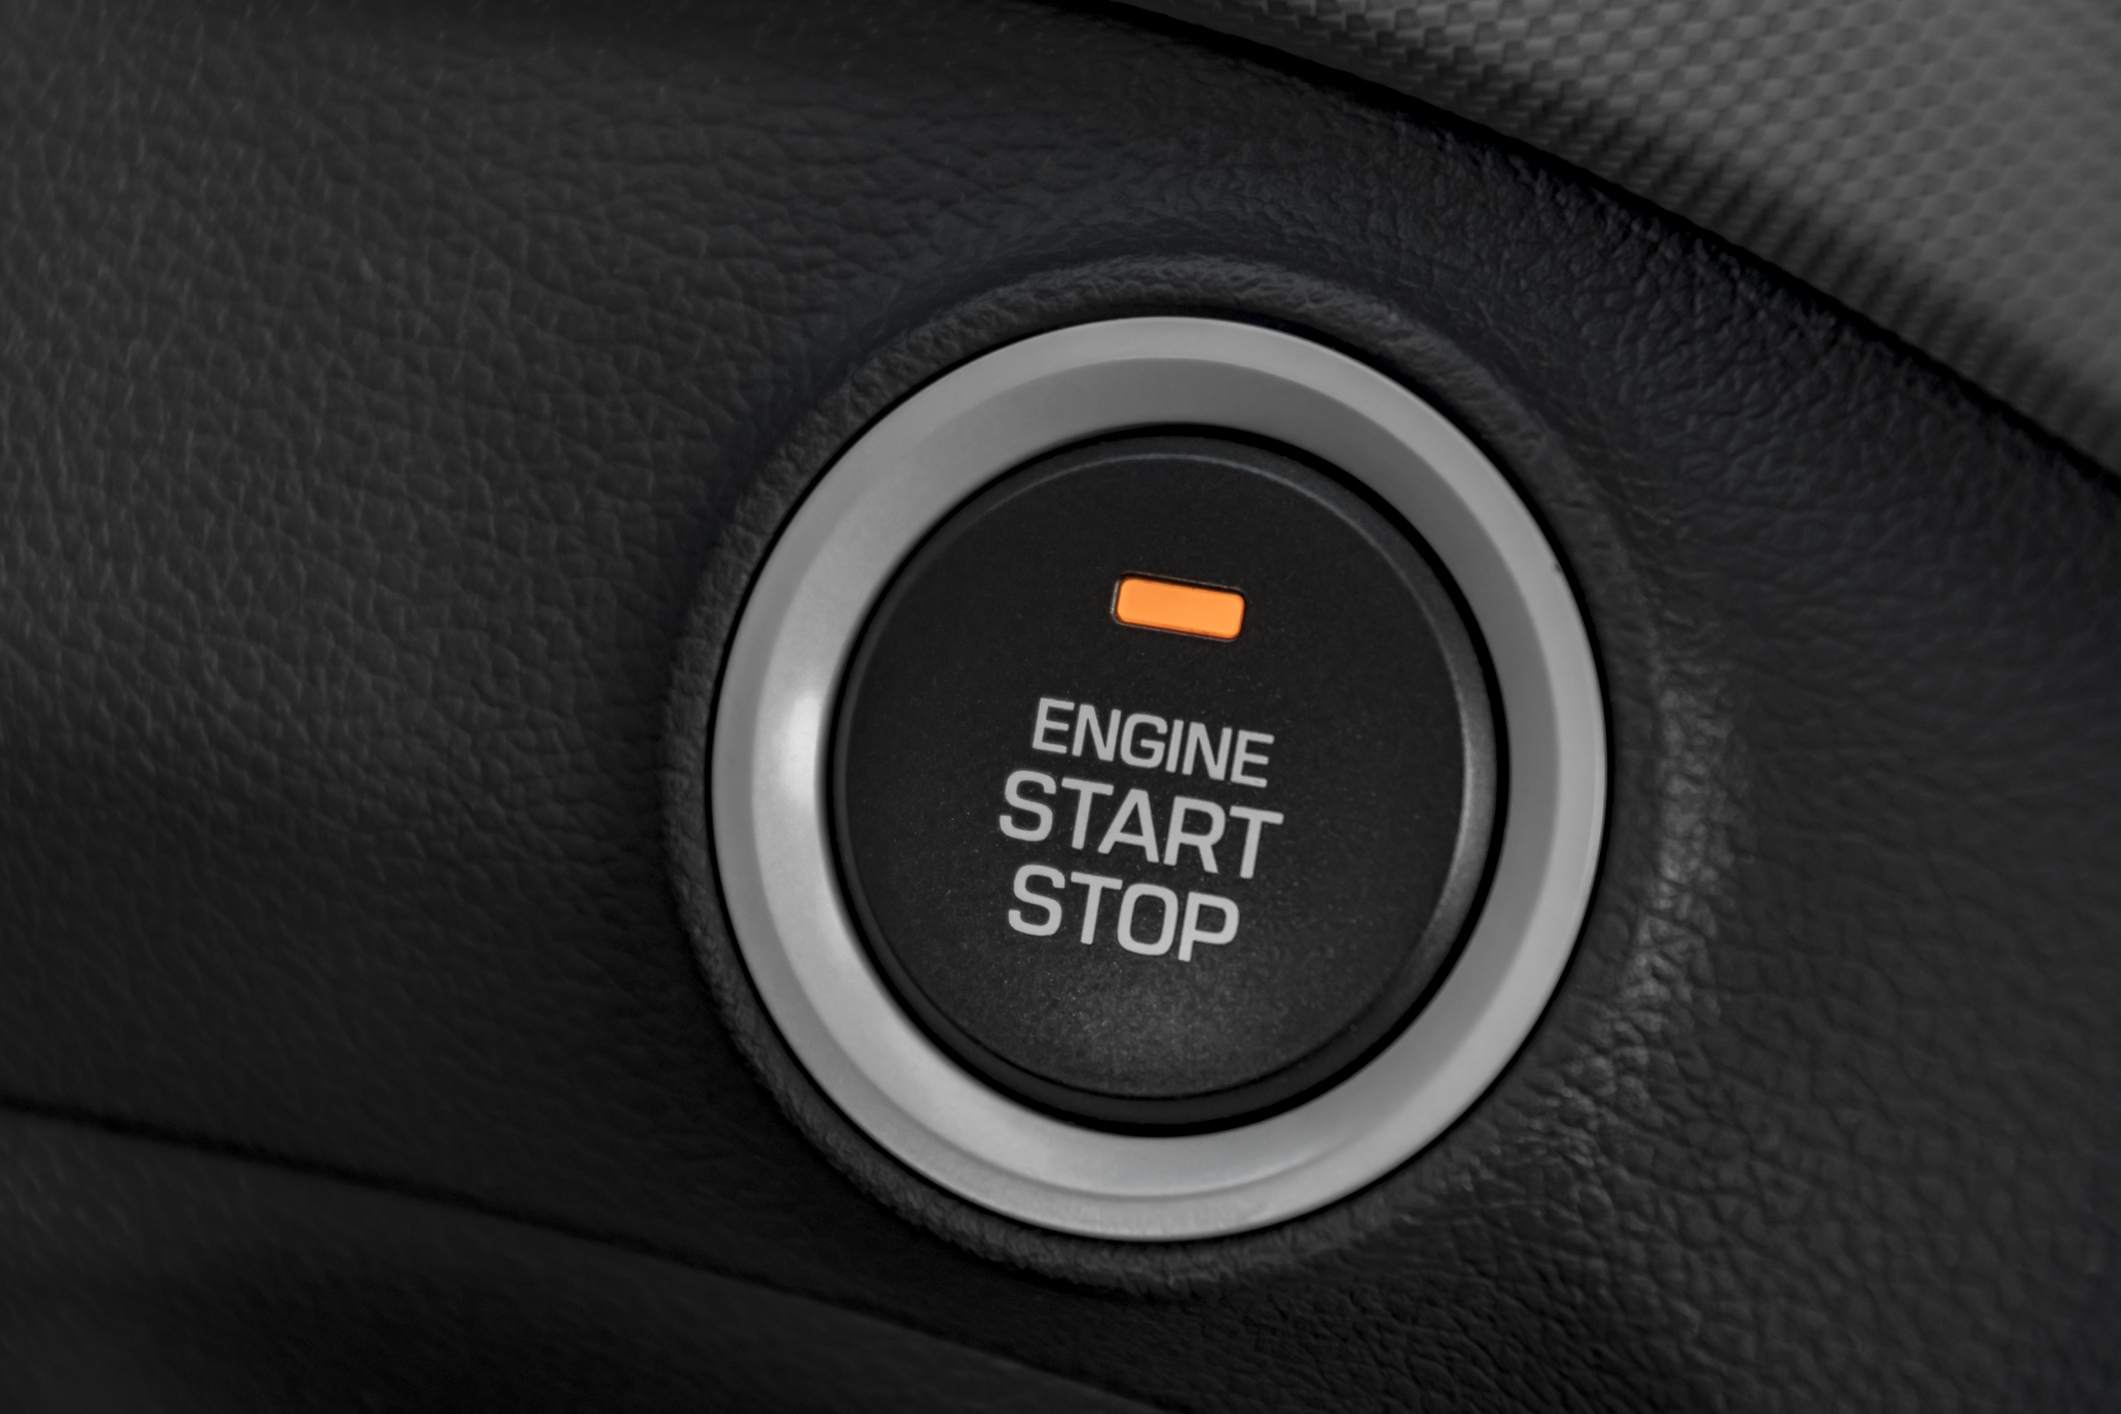 Why Your Car Key Remote Doesn't Work